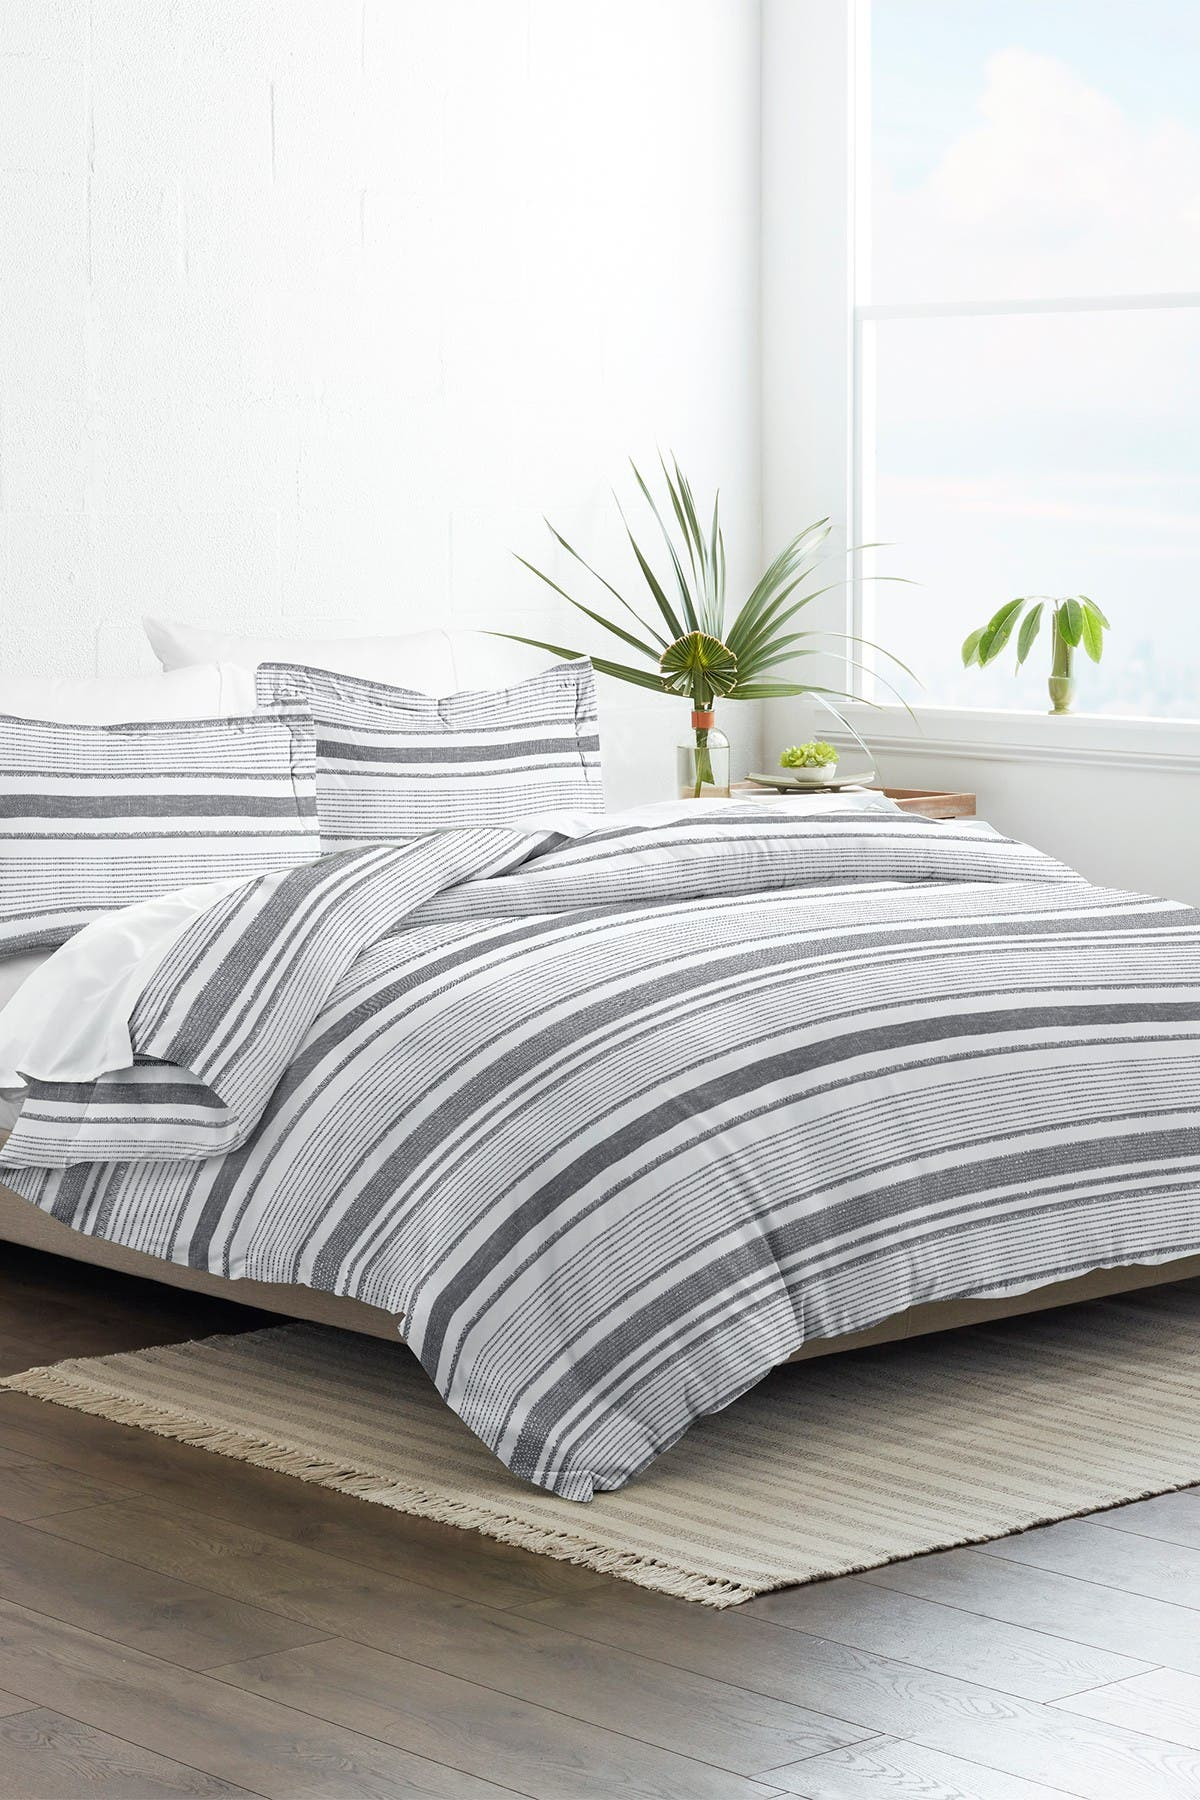 Image of IENJOY HOME Home Collection Premium Ultra Soft Vintage Stripe Pattern 3-Piece King/California King Duvet Cover Set - Light Gray